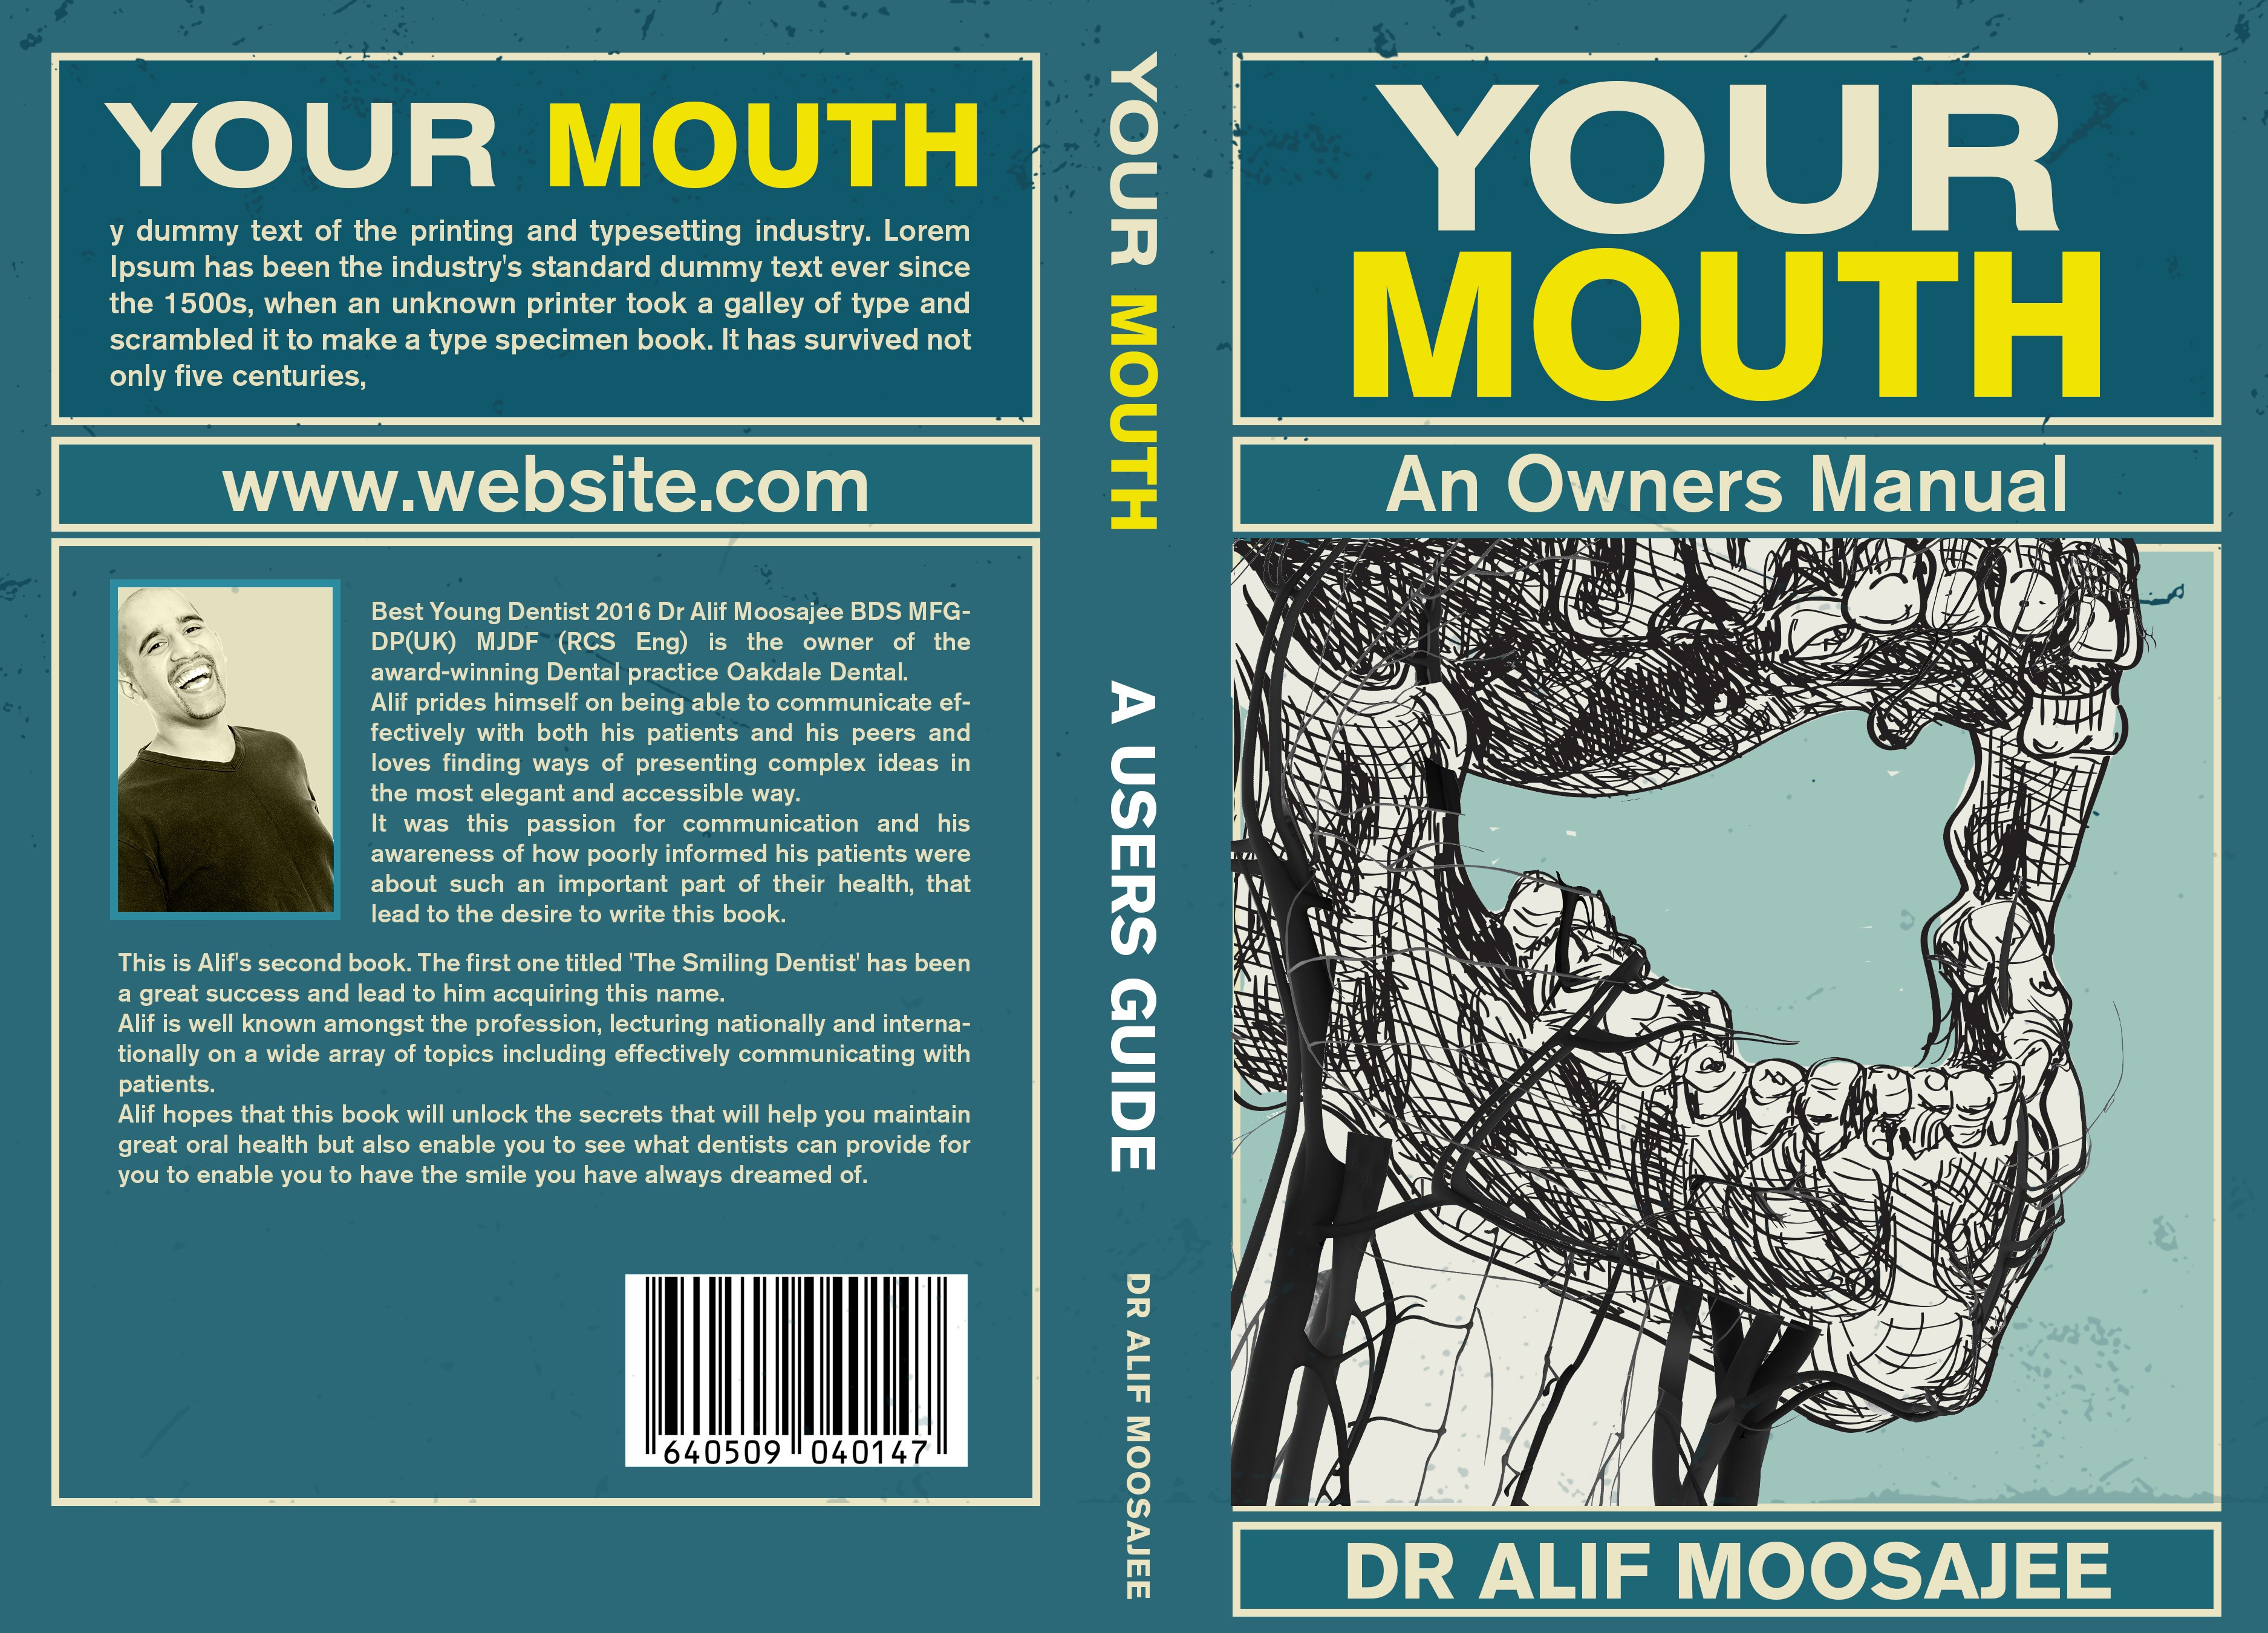 Your Mouth...Your Way